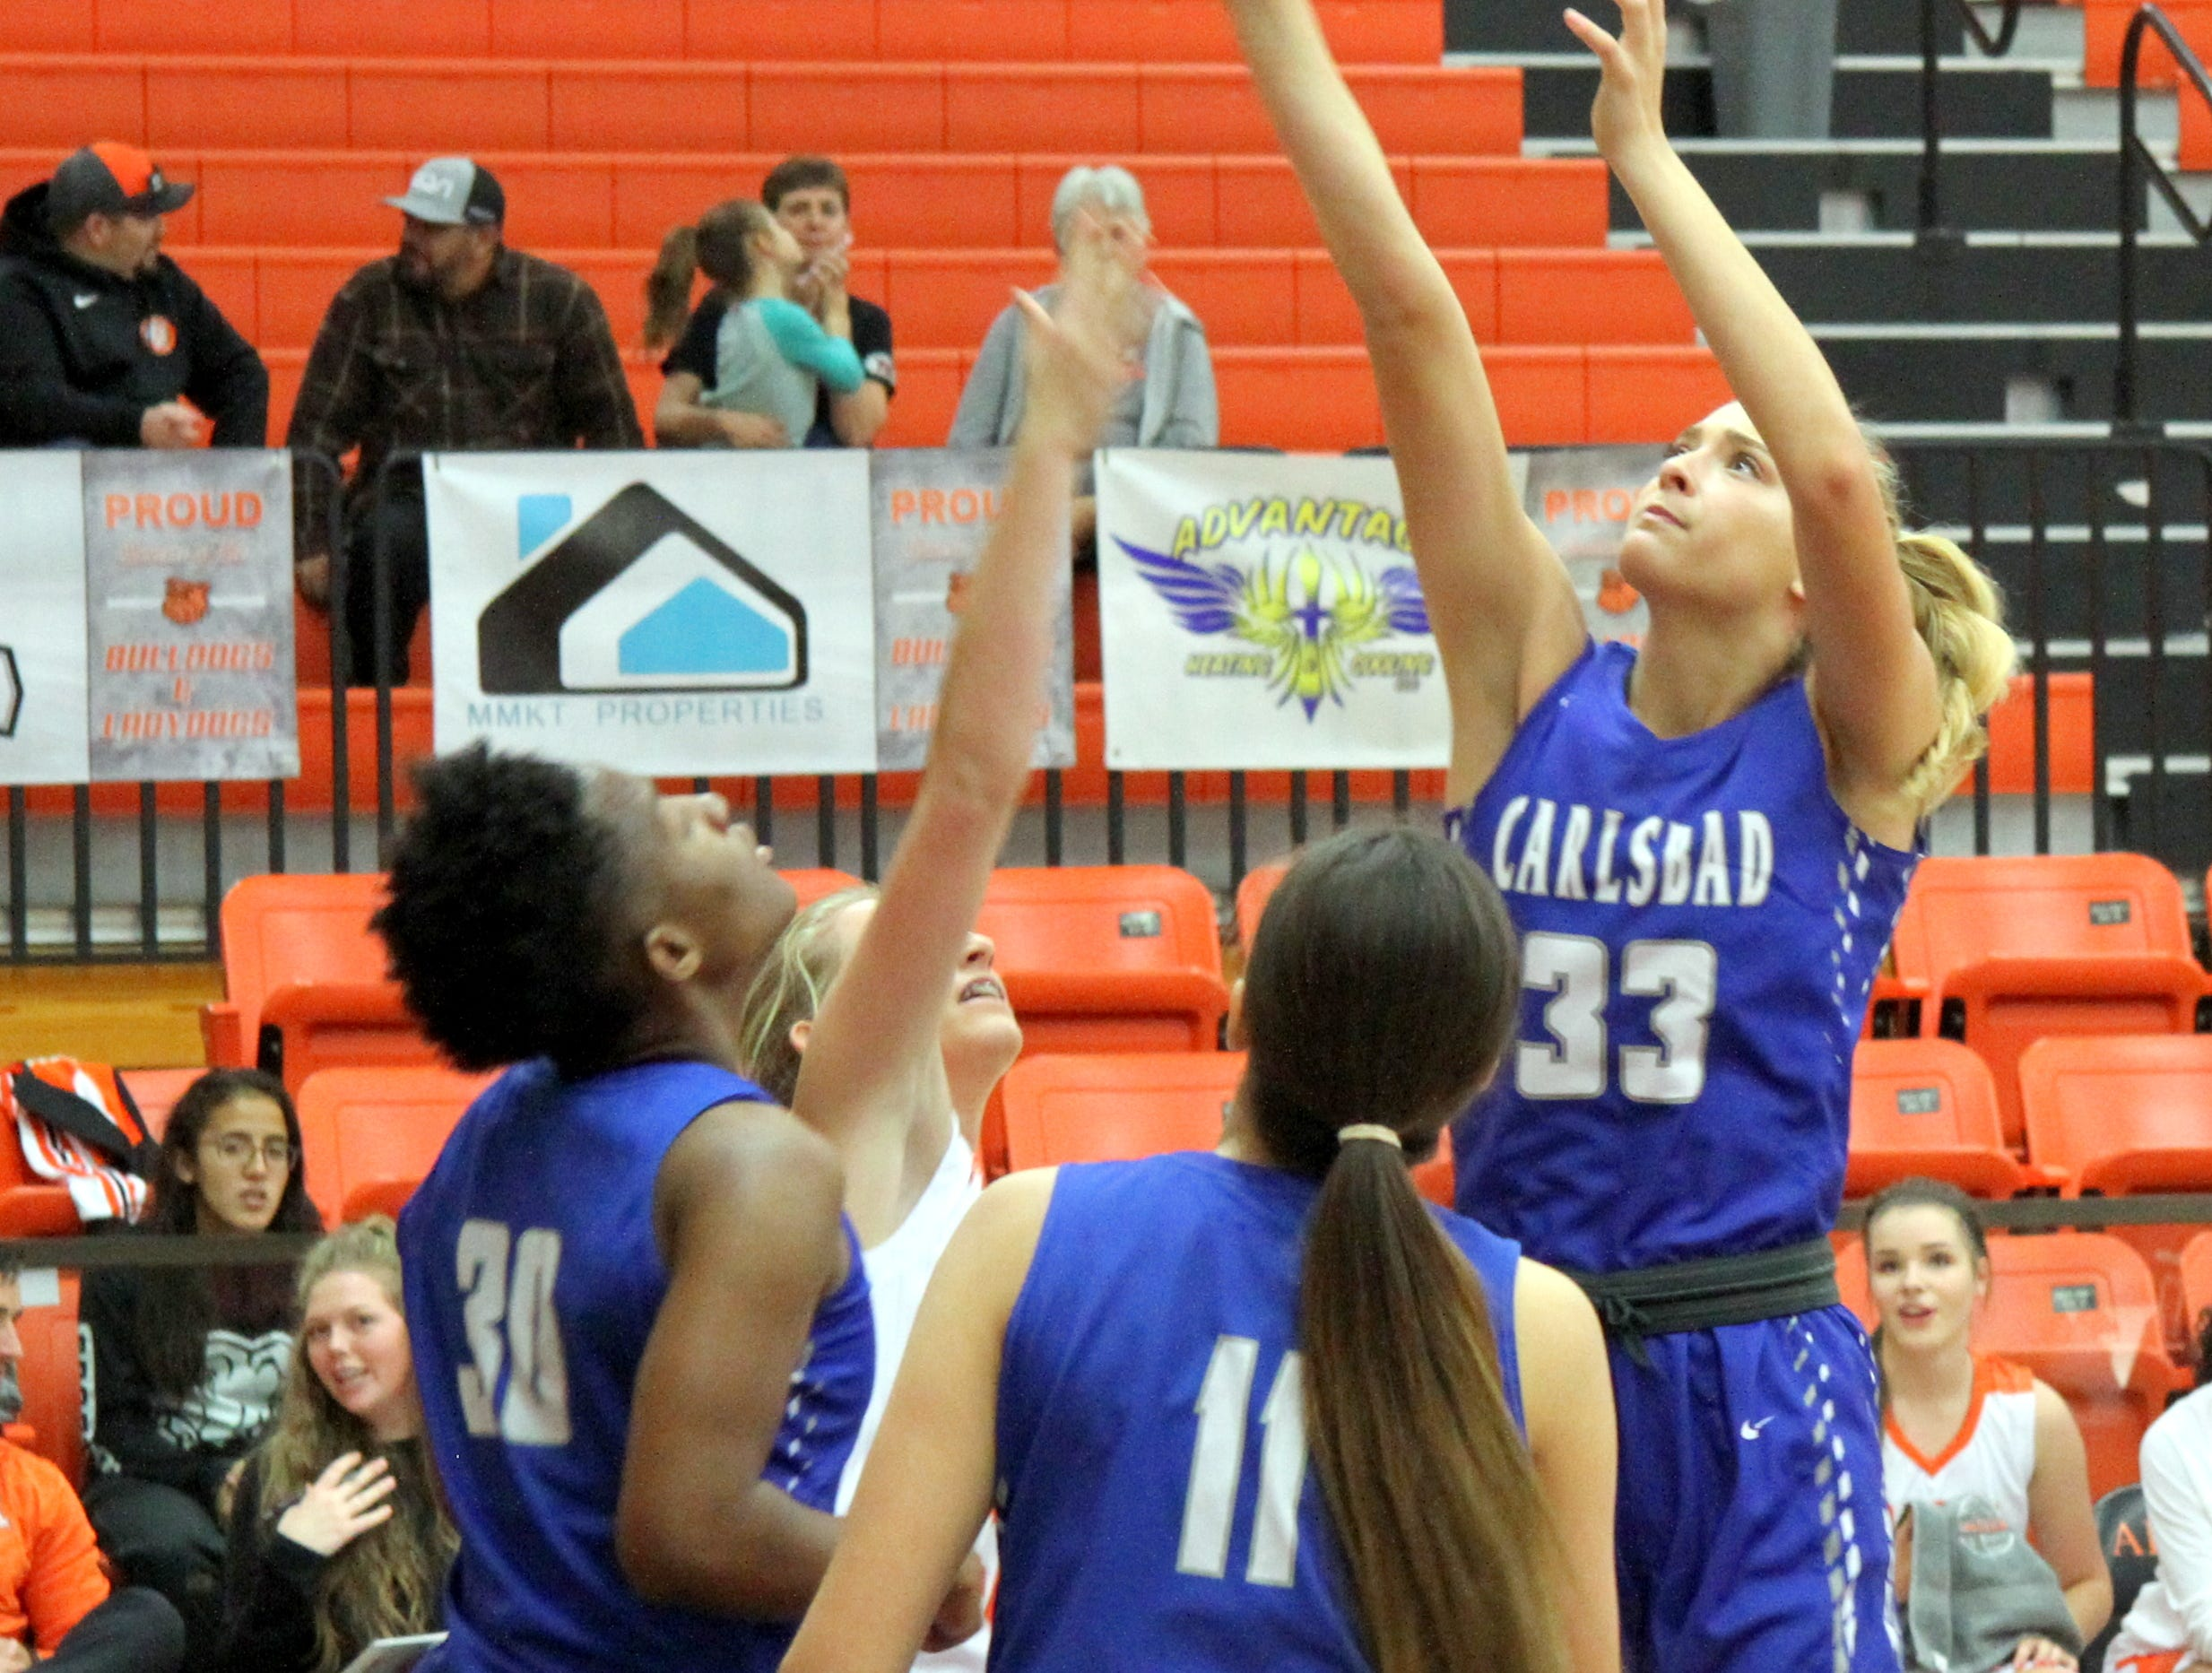 Jordan Boatwright (33) shoots over an Artesia defender during Saturday's third-place game in Artesia.